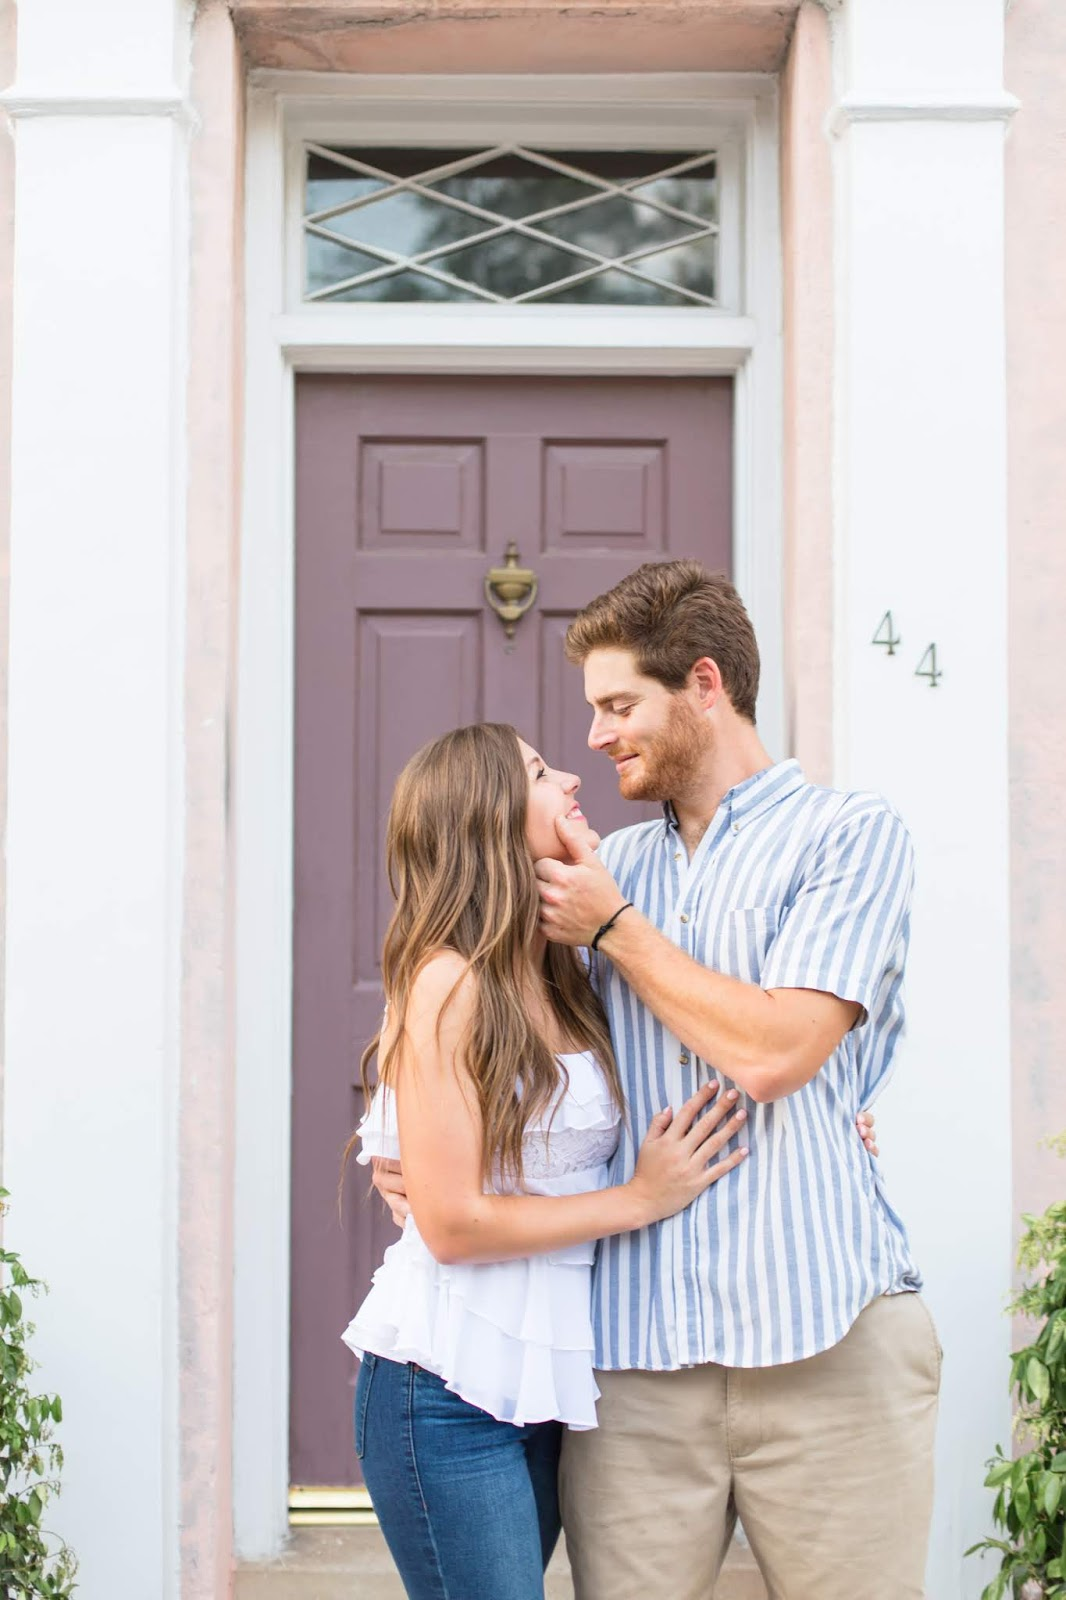 Downtown Charleston, SC Engagement Photoshoot Session - Chasing Cinderella